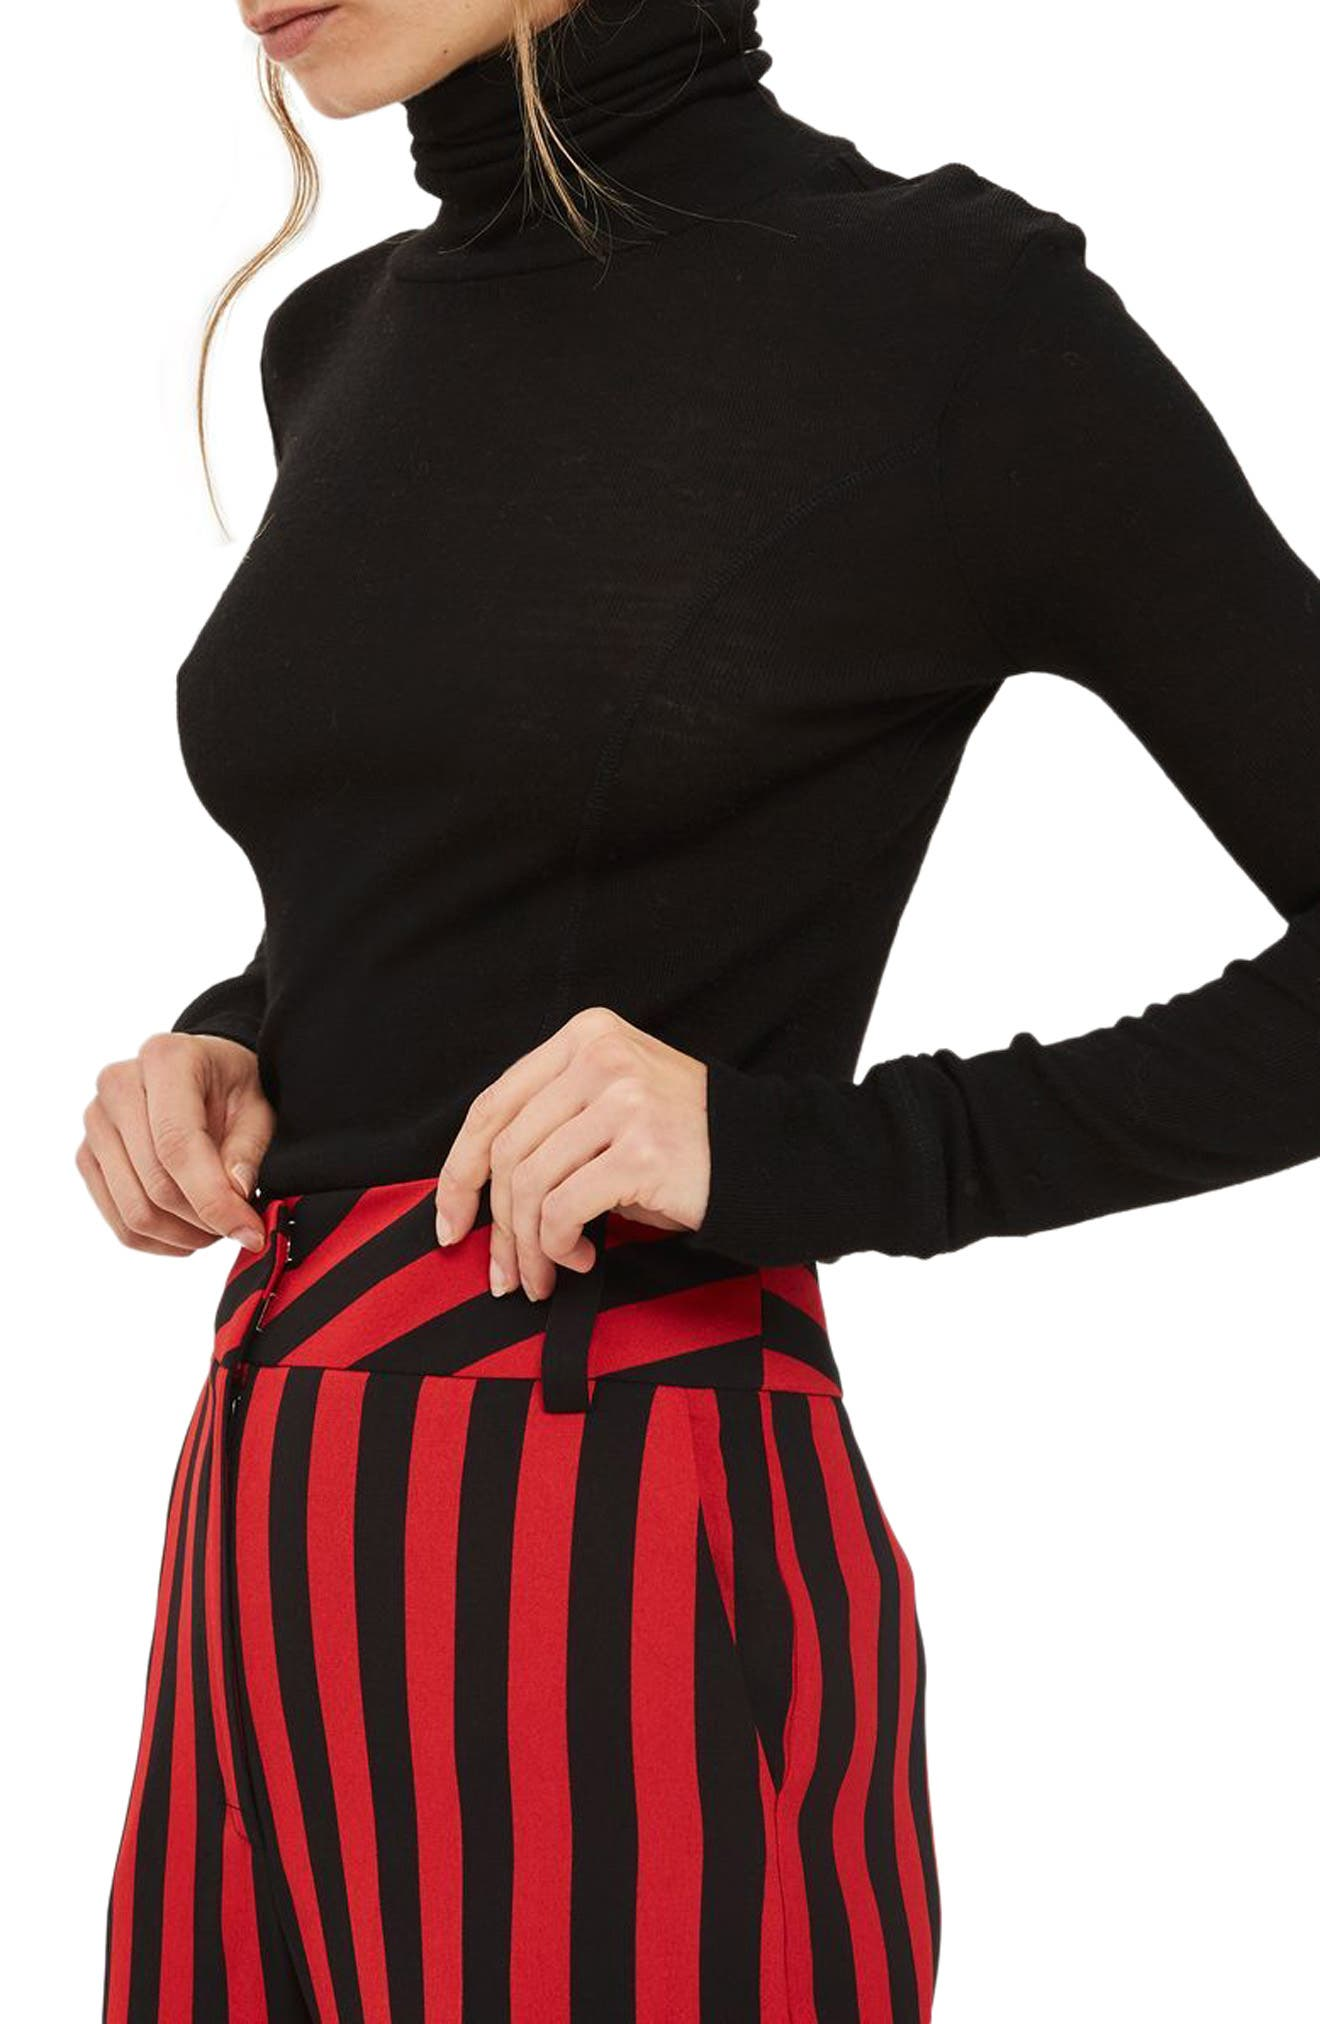 Humbug Stripe Trousers,                             Alternate thumbnail 3, color,                             Red Multi